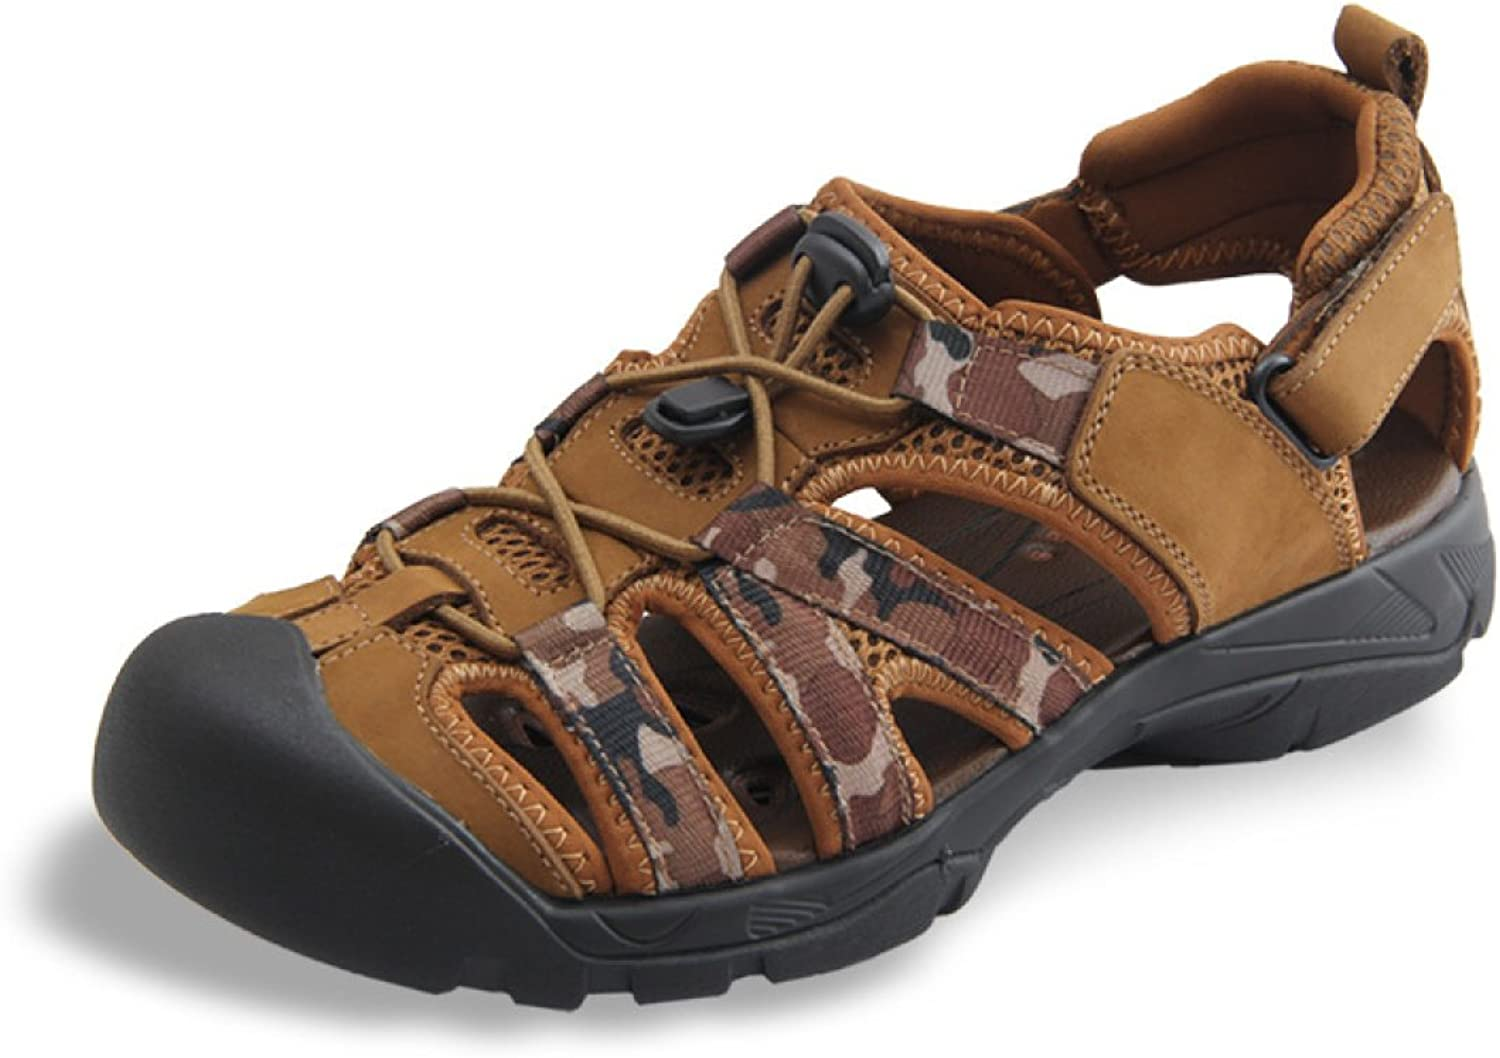 LXXAMens Beach Real Leather Summer Sandals Quick Drying Outdoor shoes Athletic Sneakers